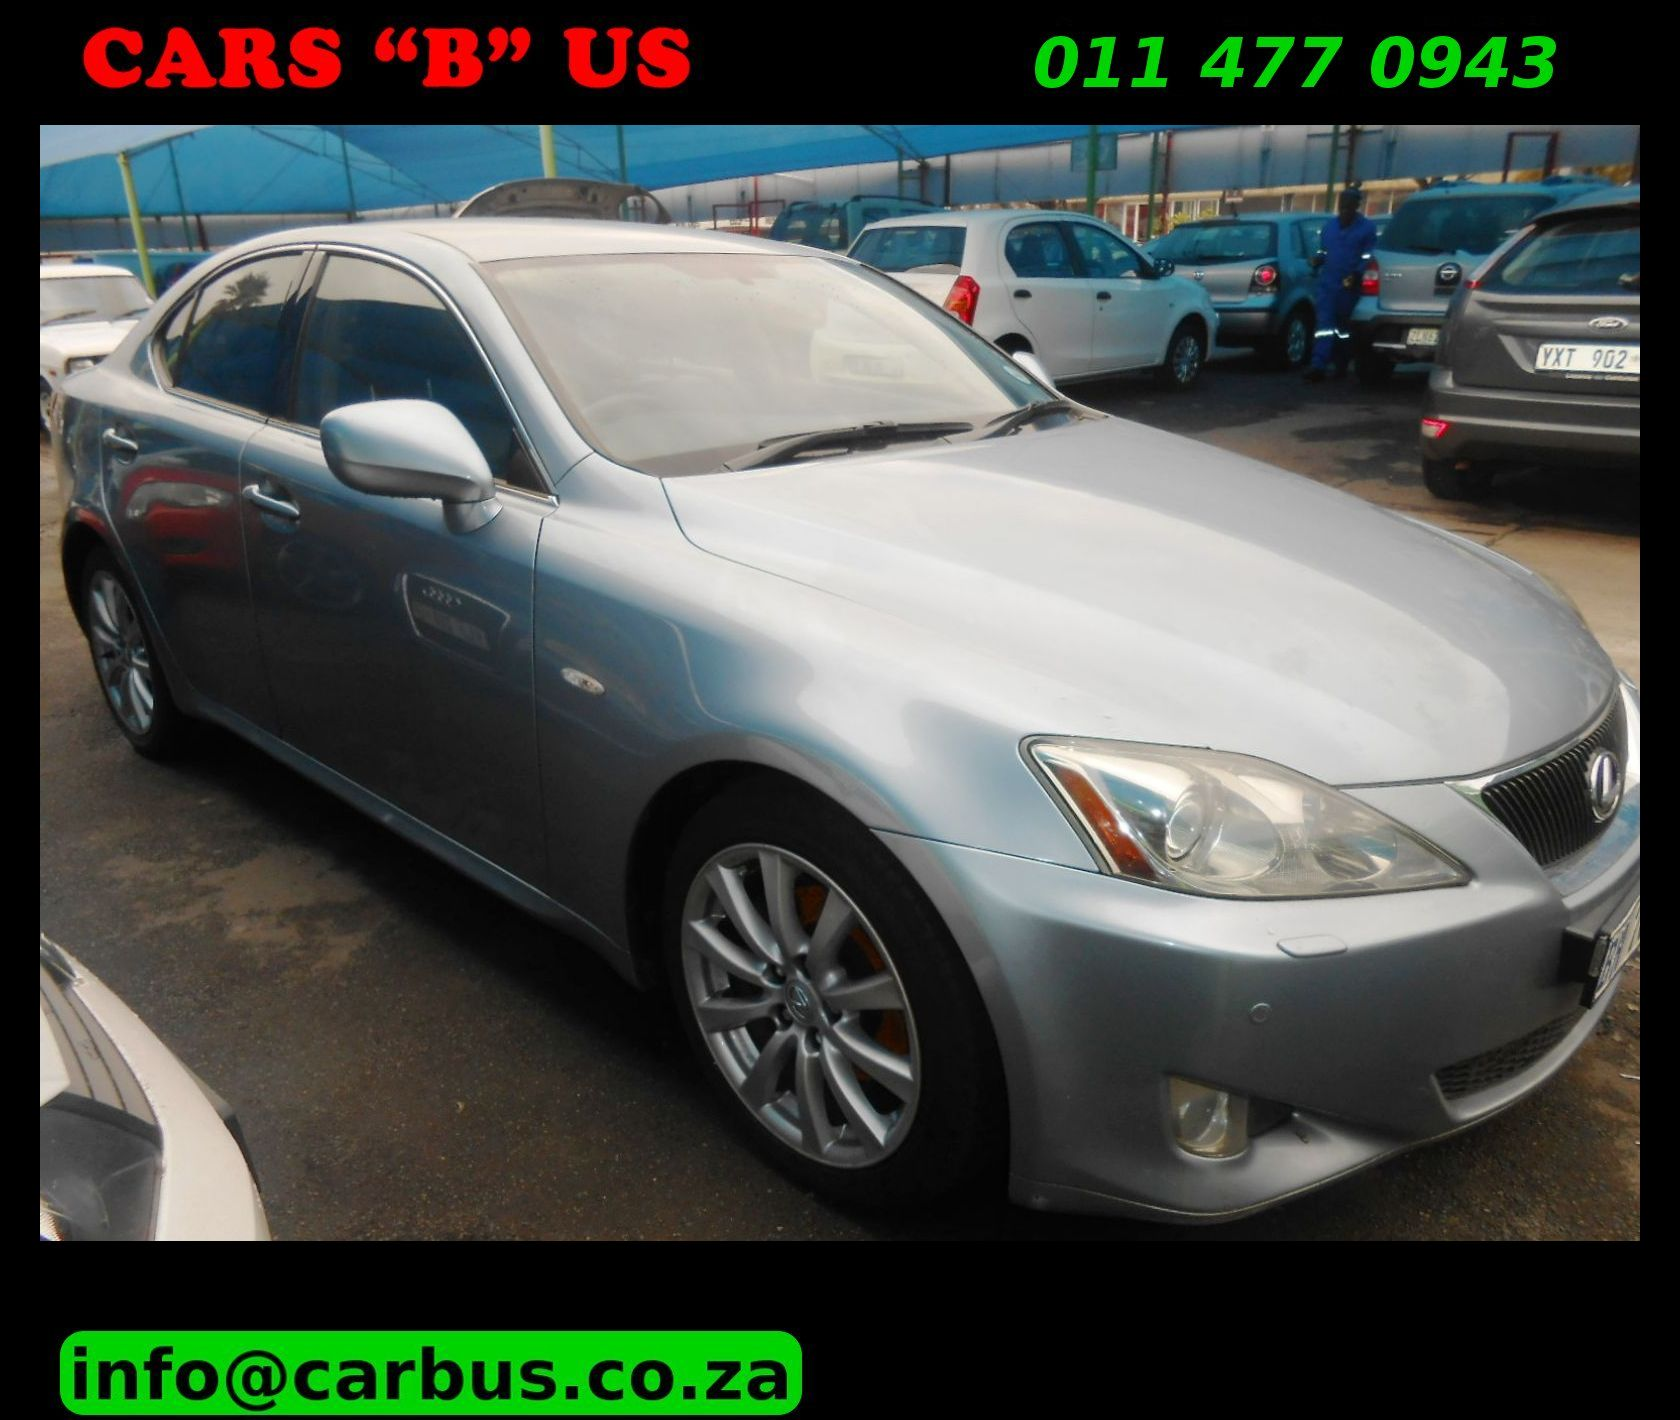 """2006 Lexus Is 250 Awd For Sale: Contact Cars """"B"""" Us For Used Cars For Sale"""